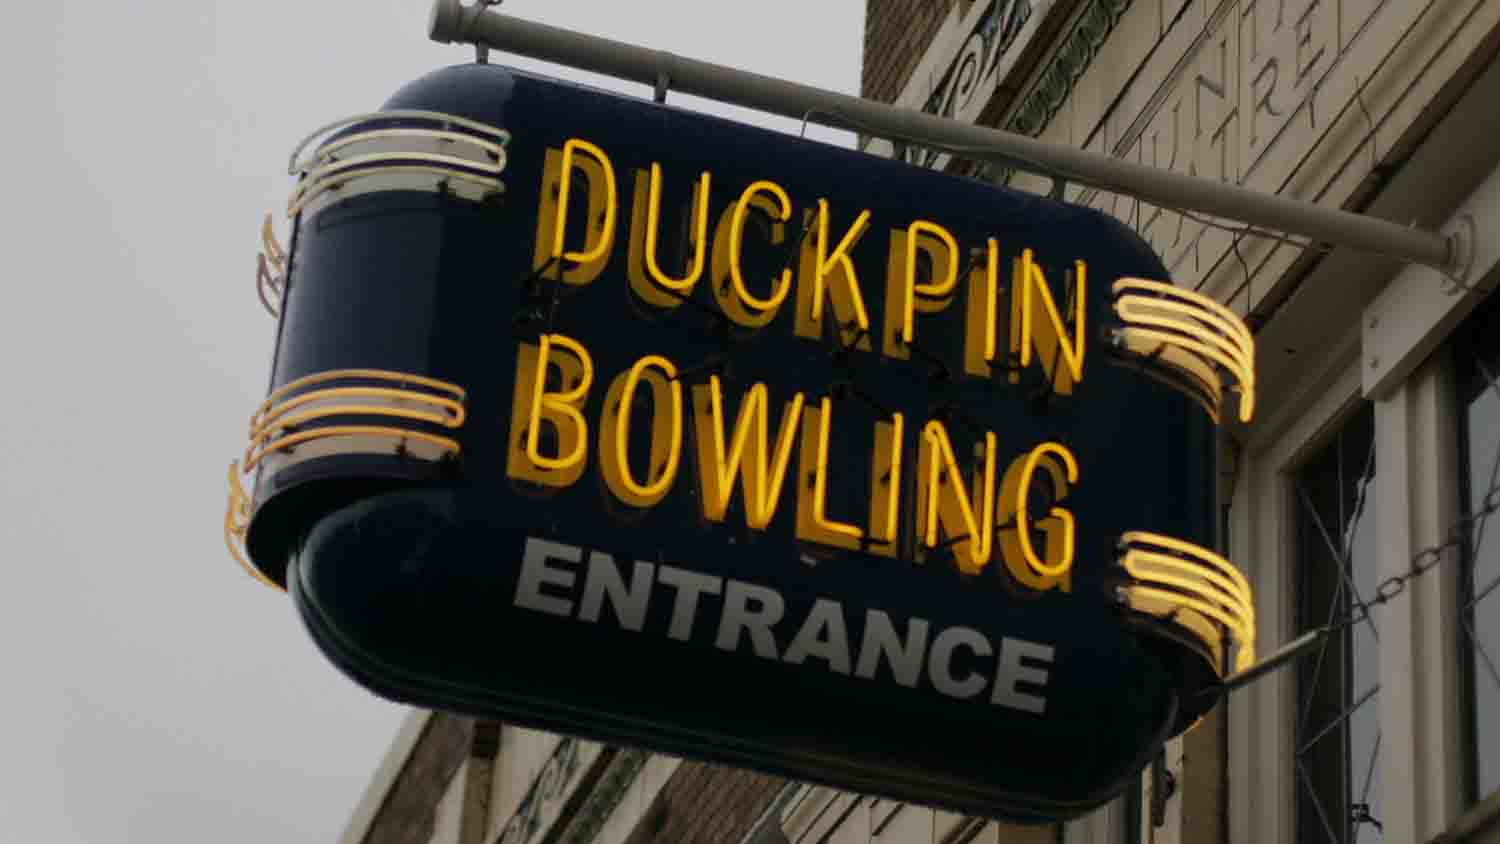 Action Duckpin Bowl & Atomic Bowl Duckpin 5